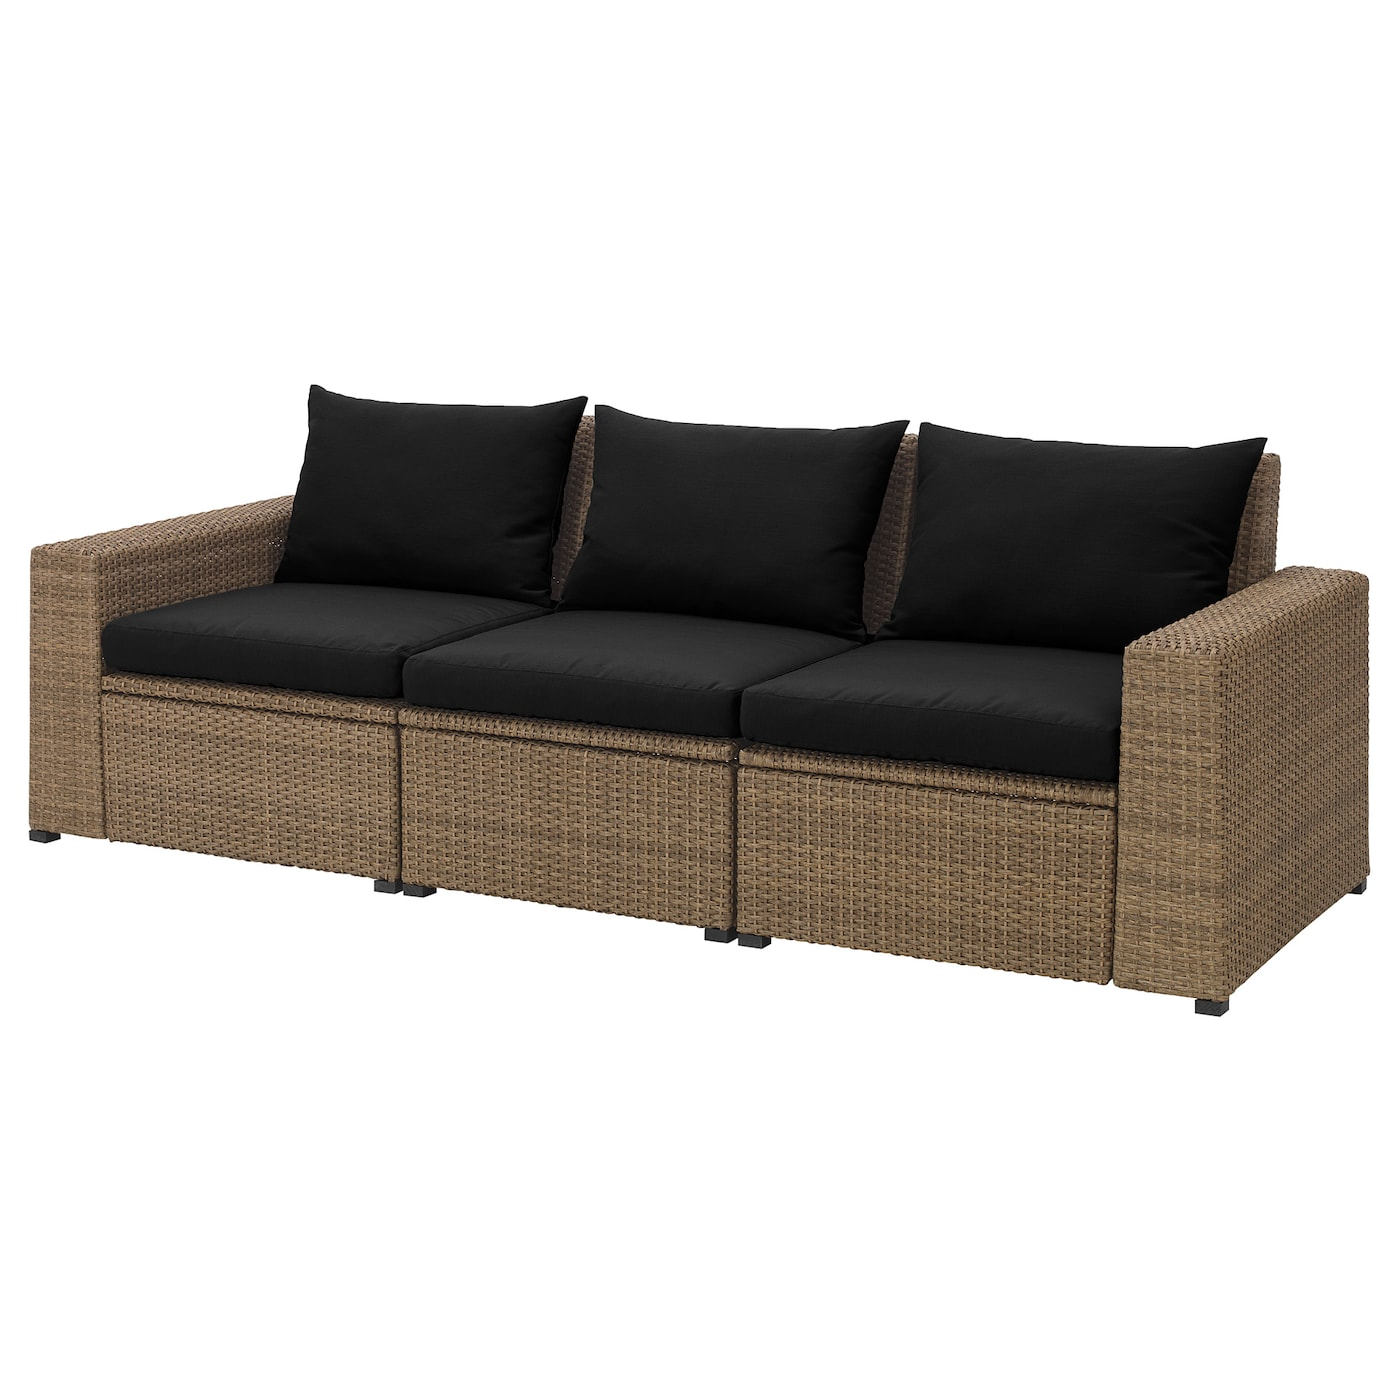 Soller n 3 seat sofa outdoor brown h ll black 223x82x80 for Sofa exterior 120 cm